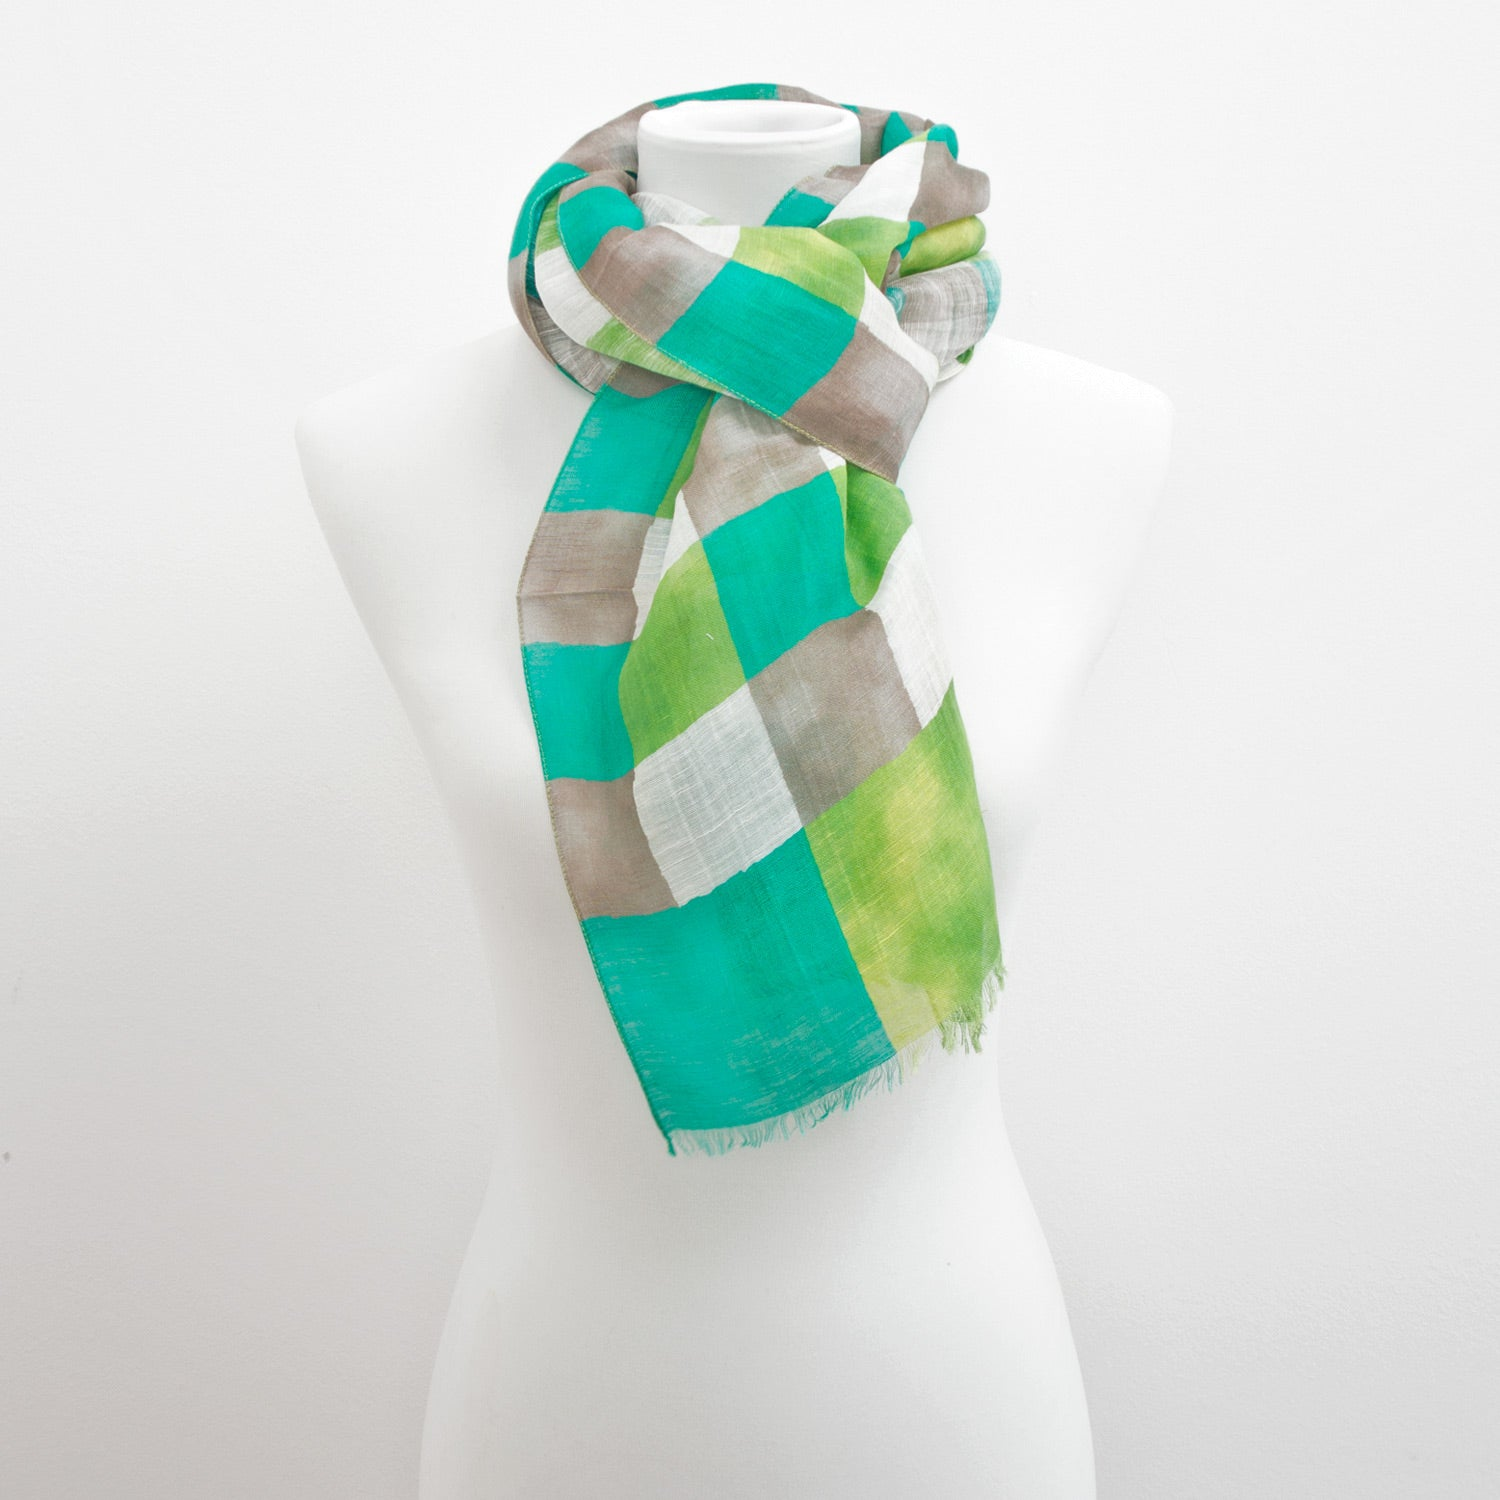 Doria & Dojola Checkered Linen-Blend Scarf. 73% Linen 23% Modal 4% Silk 43 x 170 cm. 100% Made in Italy.